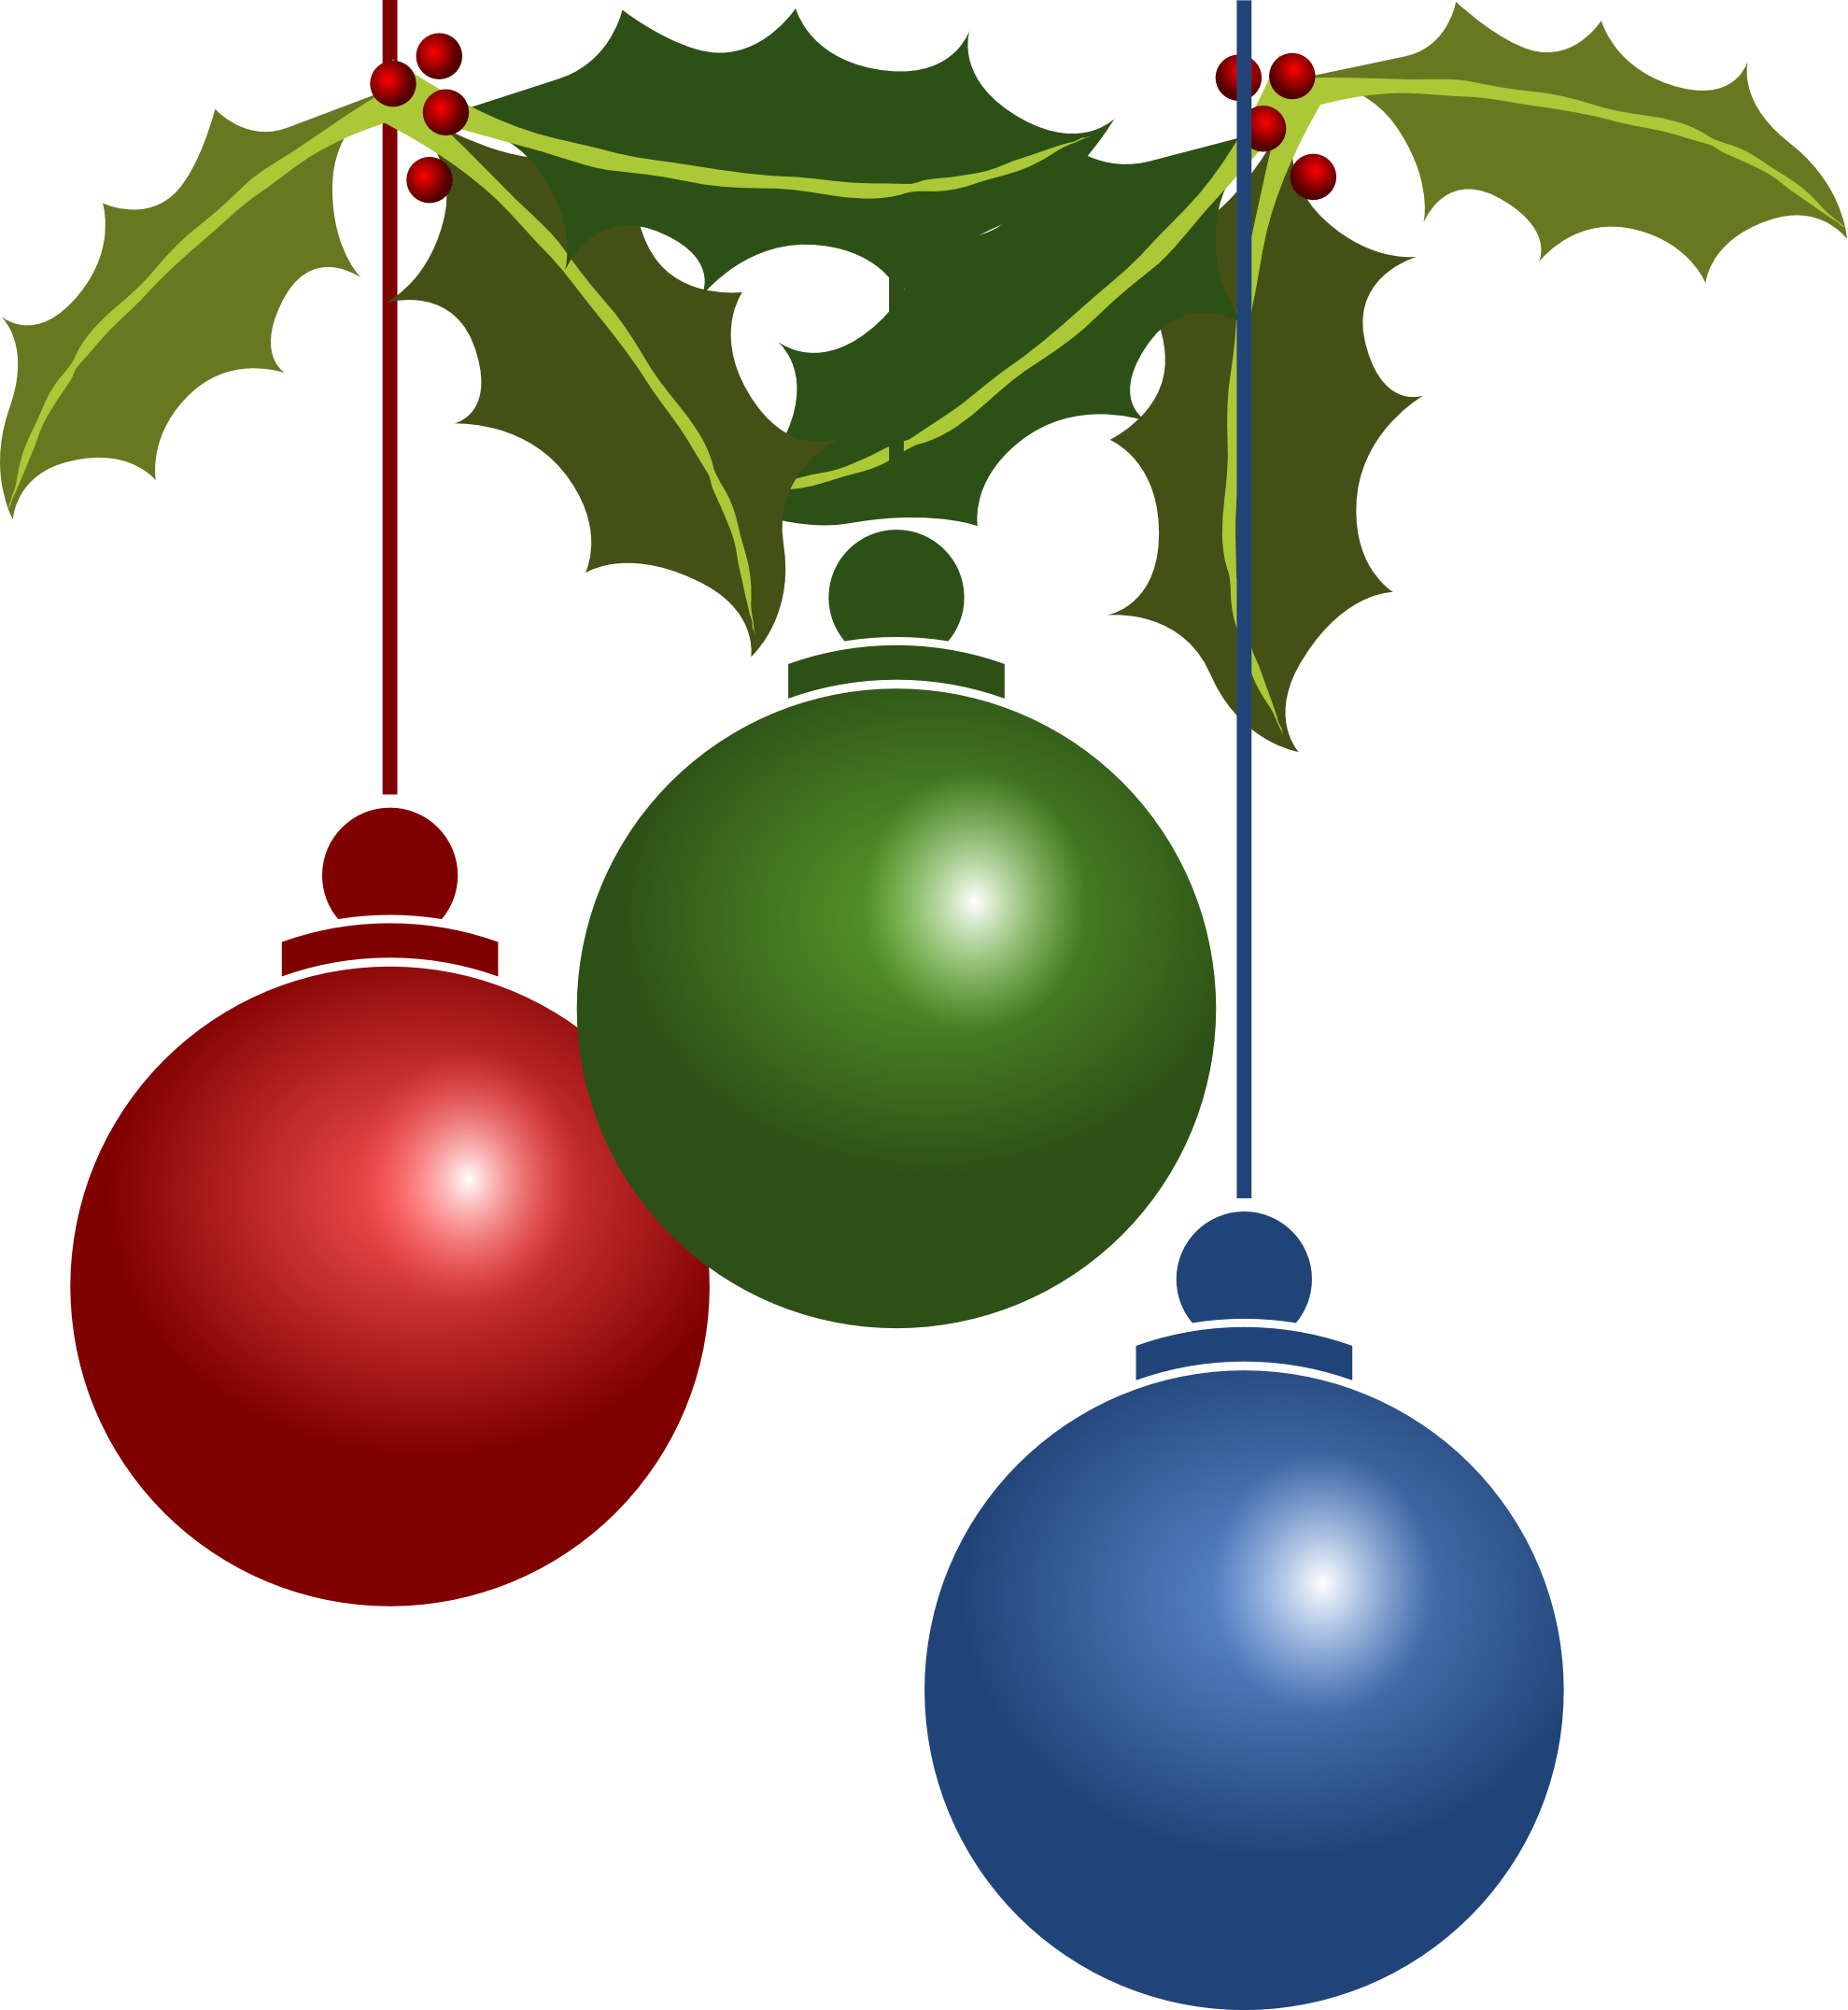 holiday clipart free - Holiday Clip Art Free